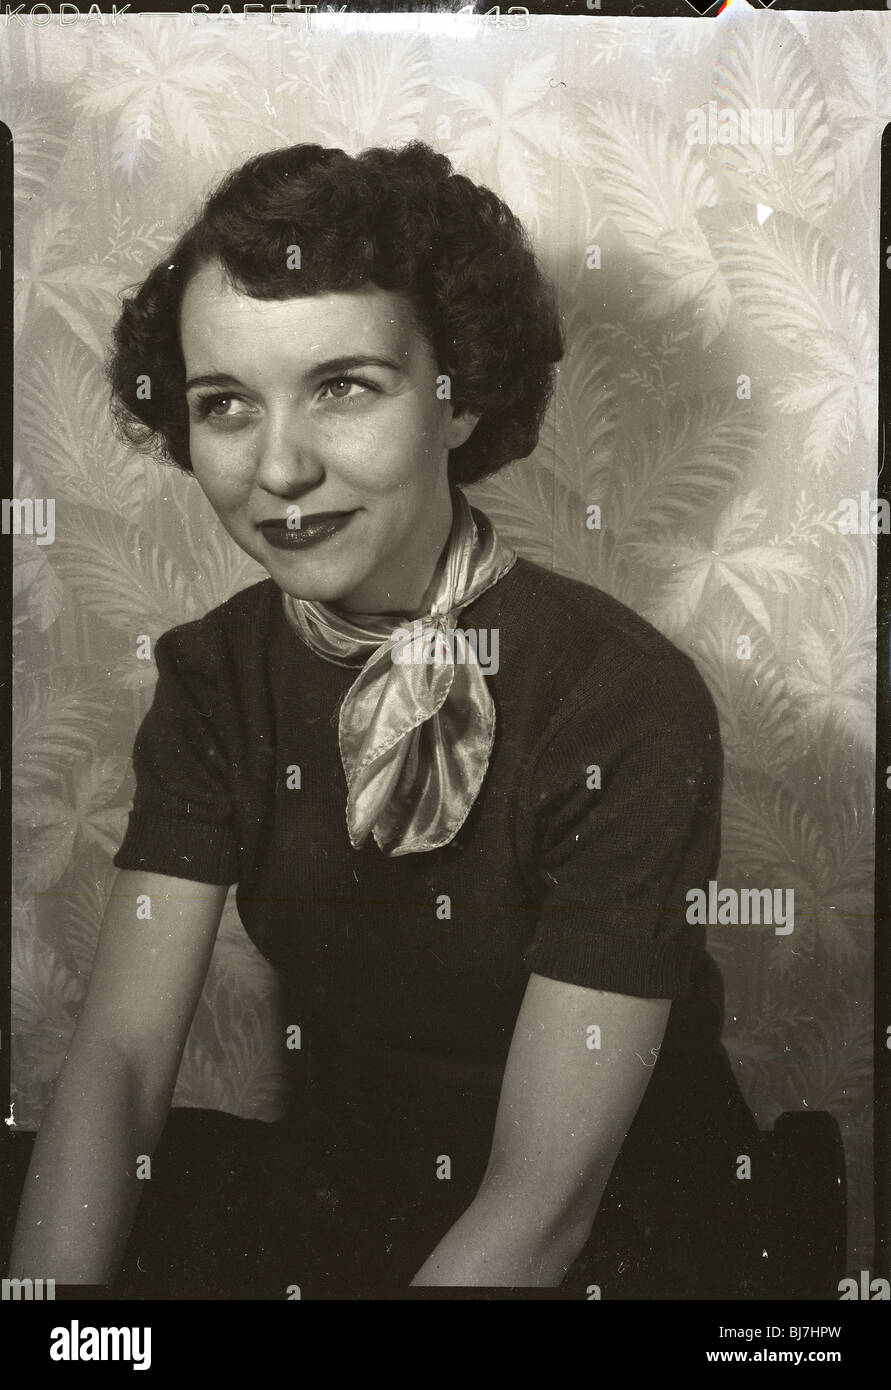 1940s 1950s Smiling Woman Stockfotos & 1940s 1950s Smiling Woman ...